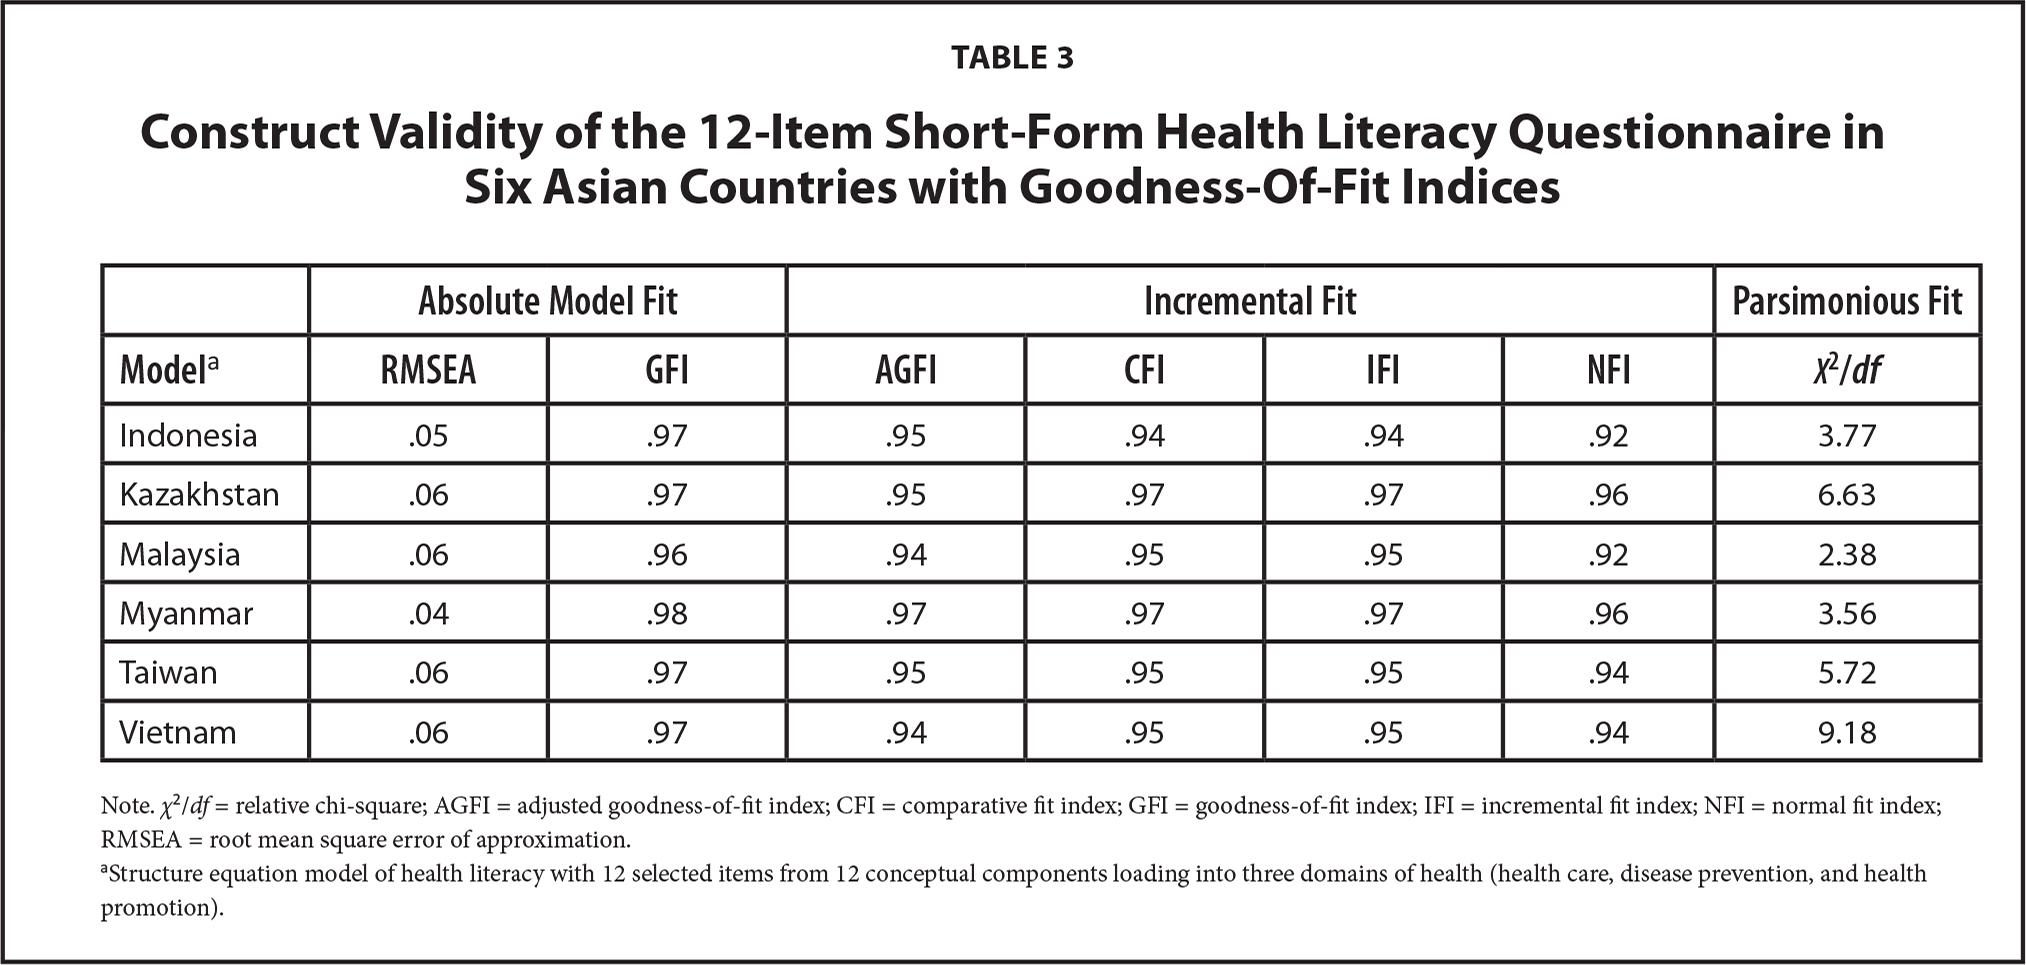 Construct Validity of the 12-Item Short-Form Health Literacy Questionnaire in Six Asian Countries with Goodness-Of-Fit Indices